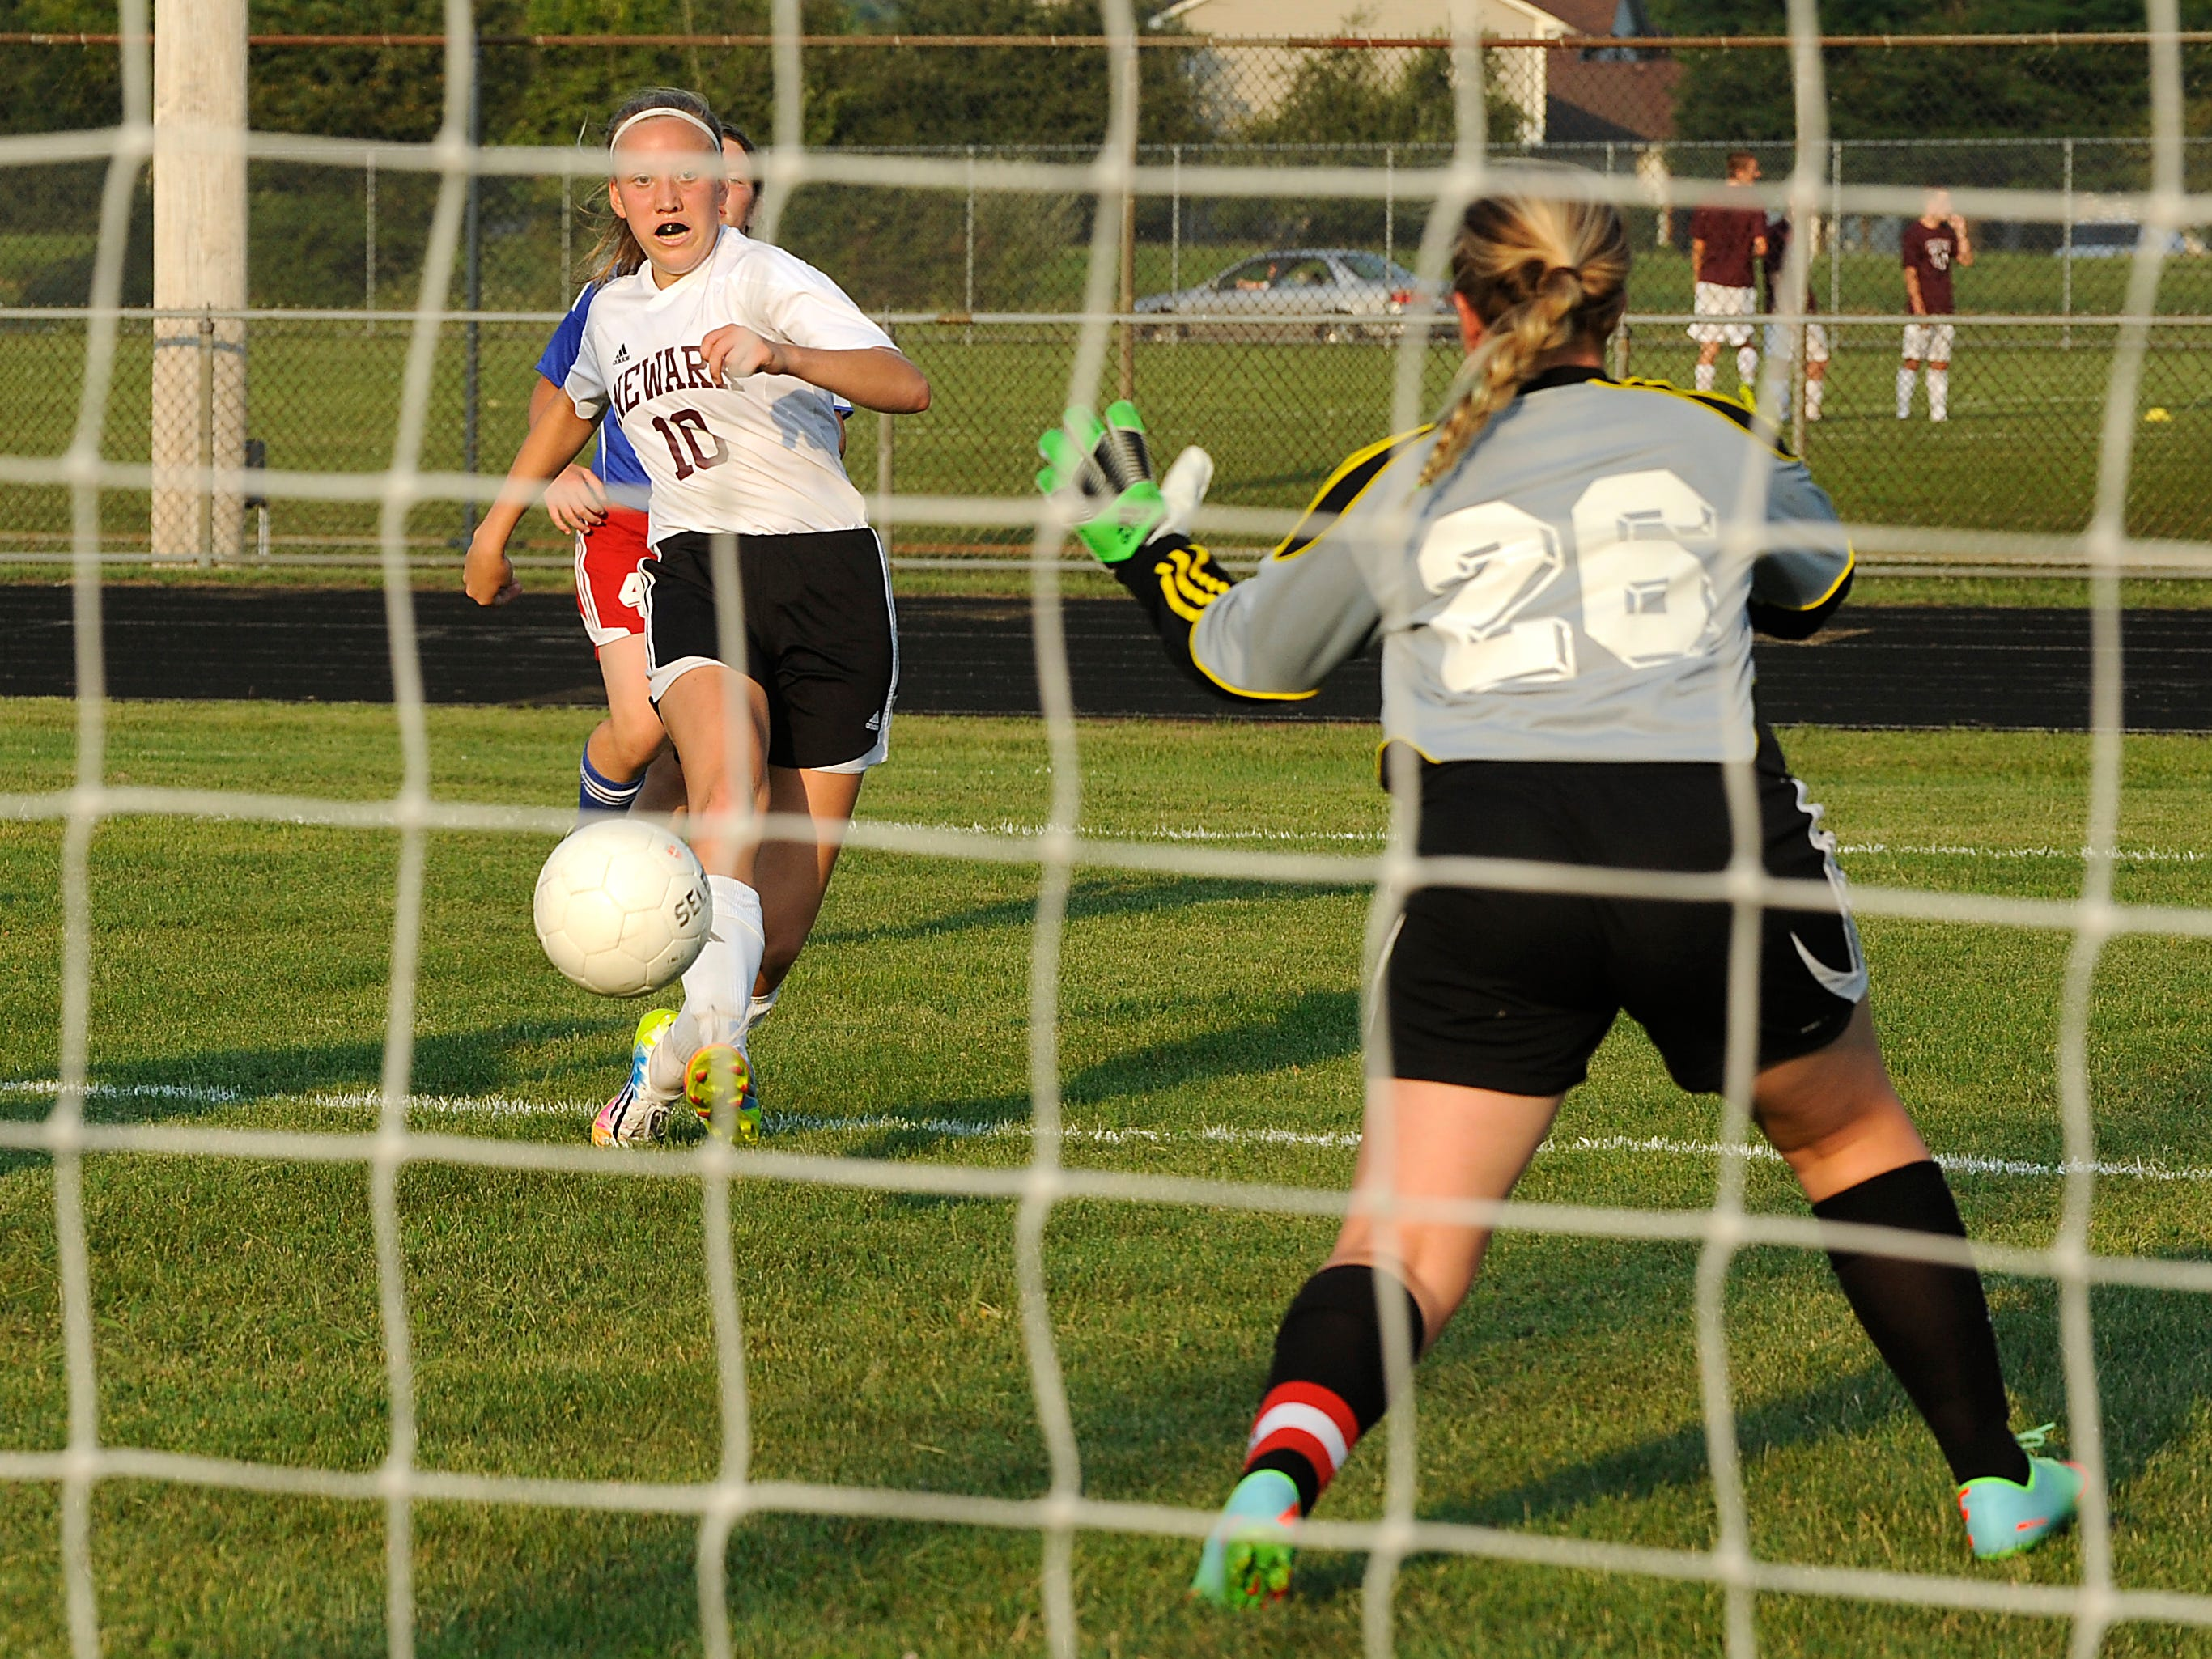 Newark's Alei Yost scores a goal against Licking Valley goalkeeper Kelsea Hagan during the Wildcats 9-0 victory against the Panthers on Tuesday at Evans Athletic Complex.